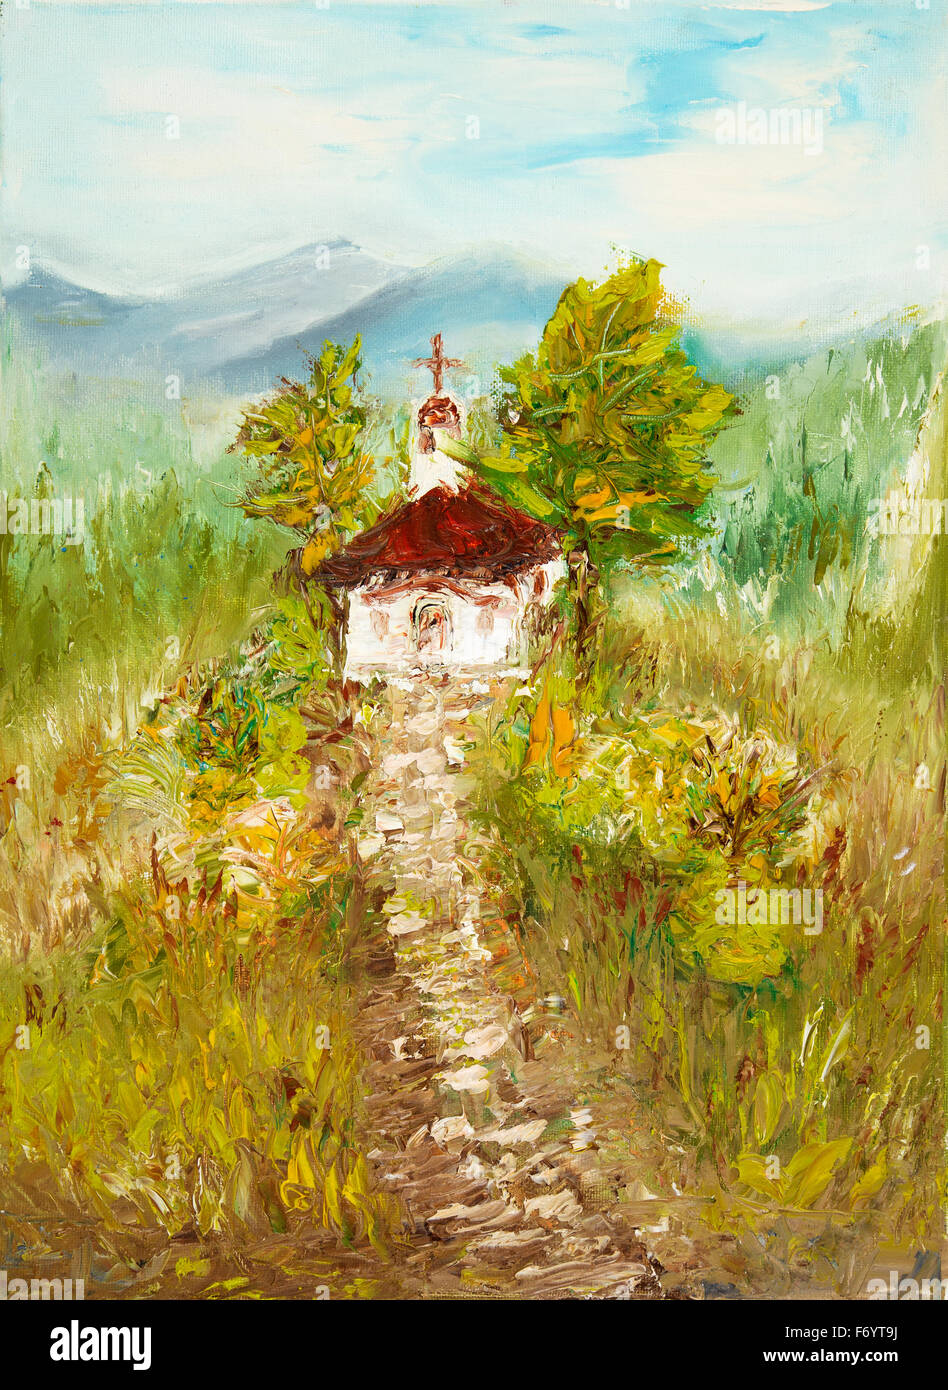 Original Oil Painting Showing Ancient Country Chapel Or Church In The Mountains On Canvas Modern Impressionism Modernismmarin